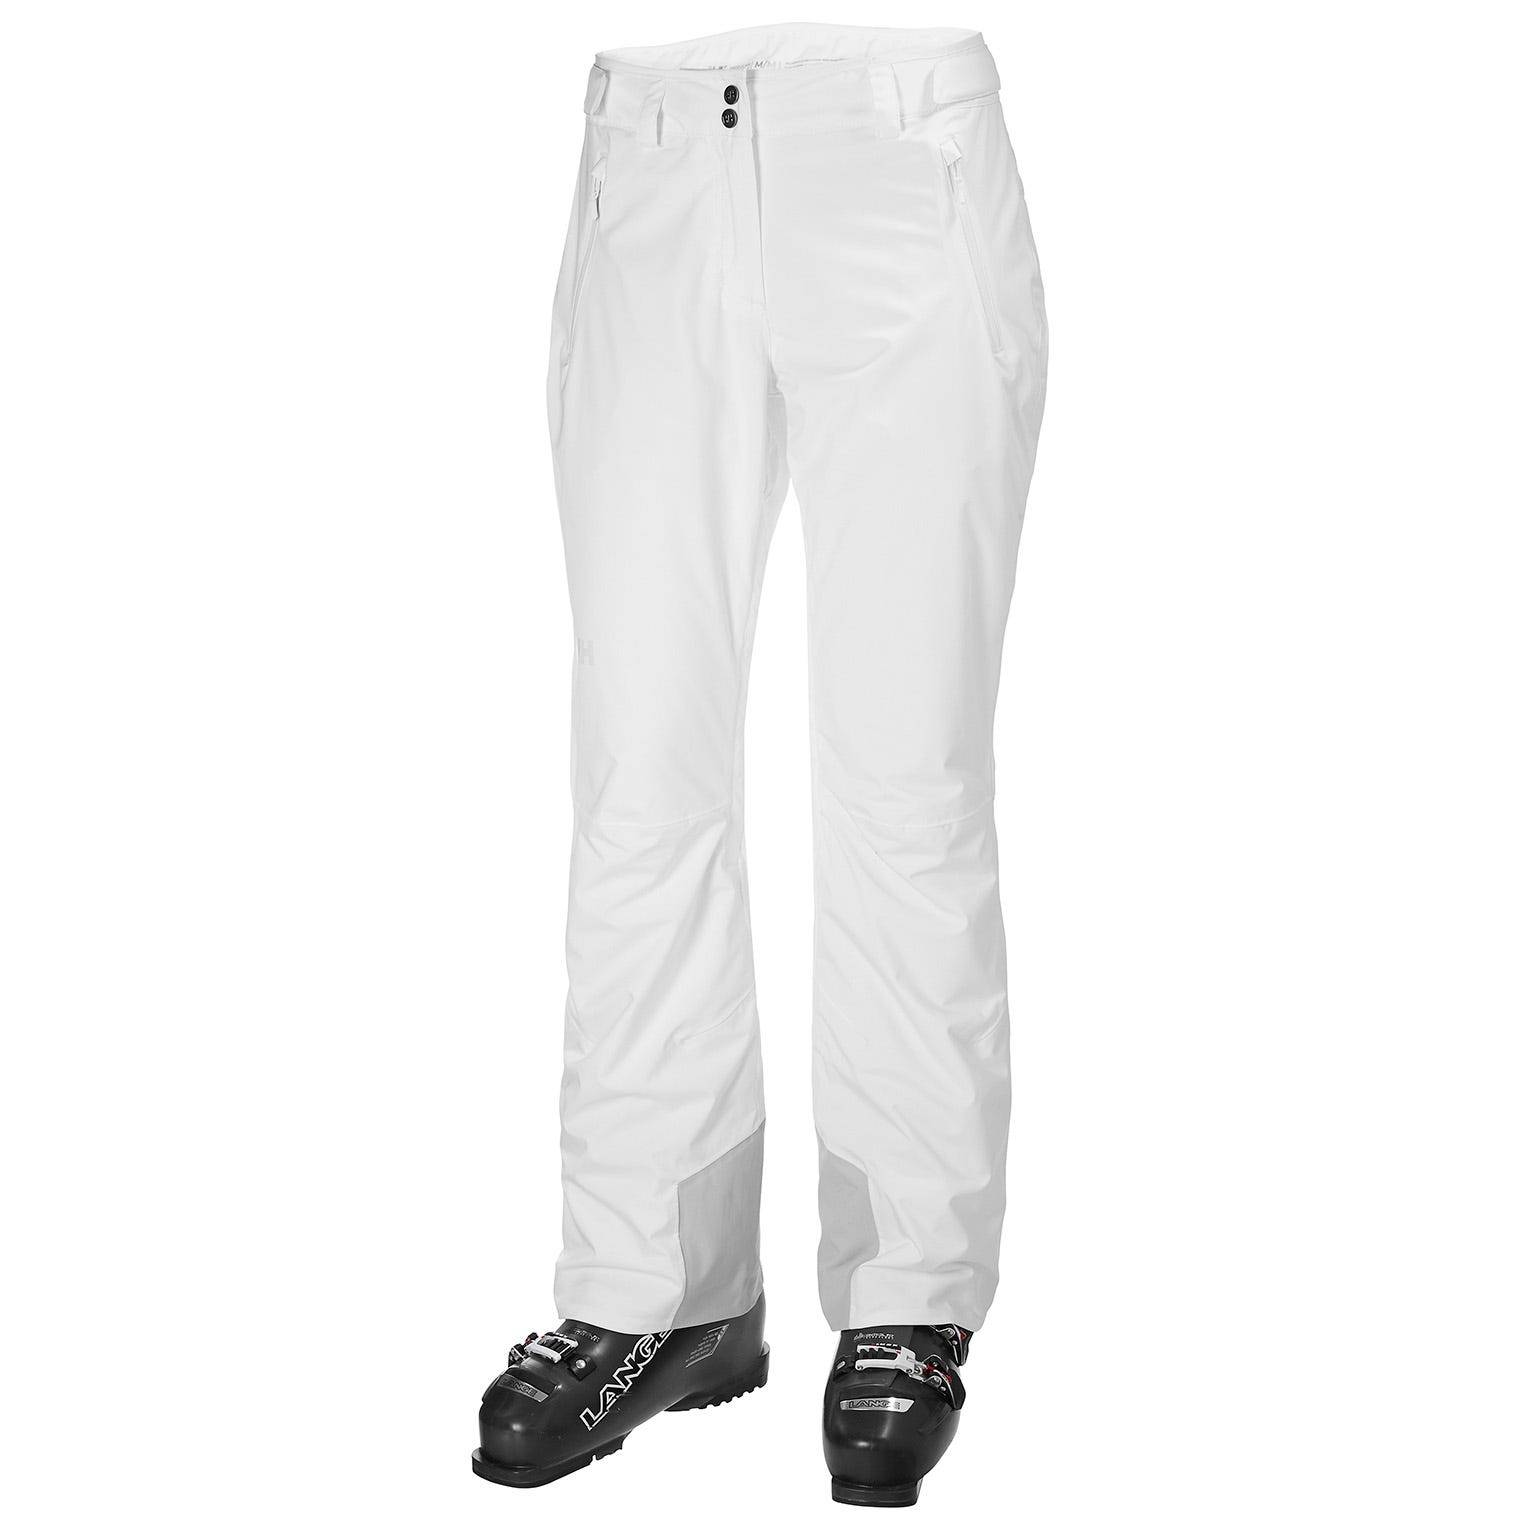 Helly Hansen W Legendary Insulated Pant Womens Ski White M